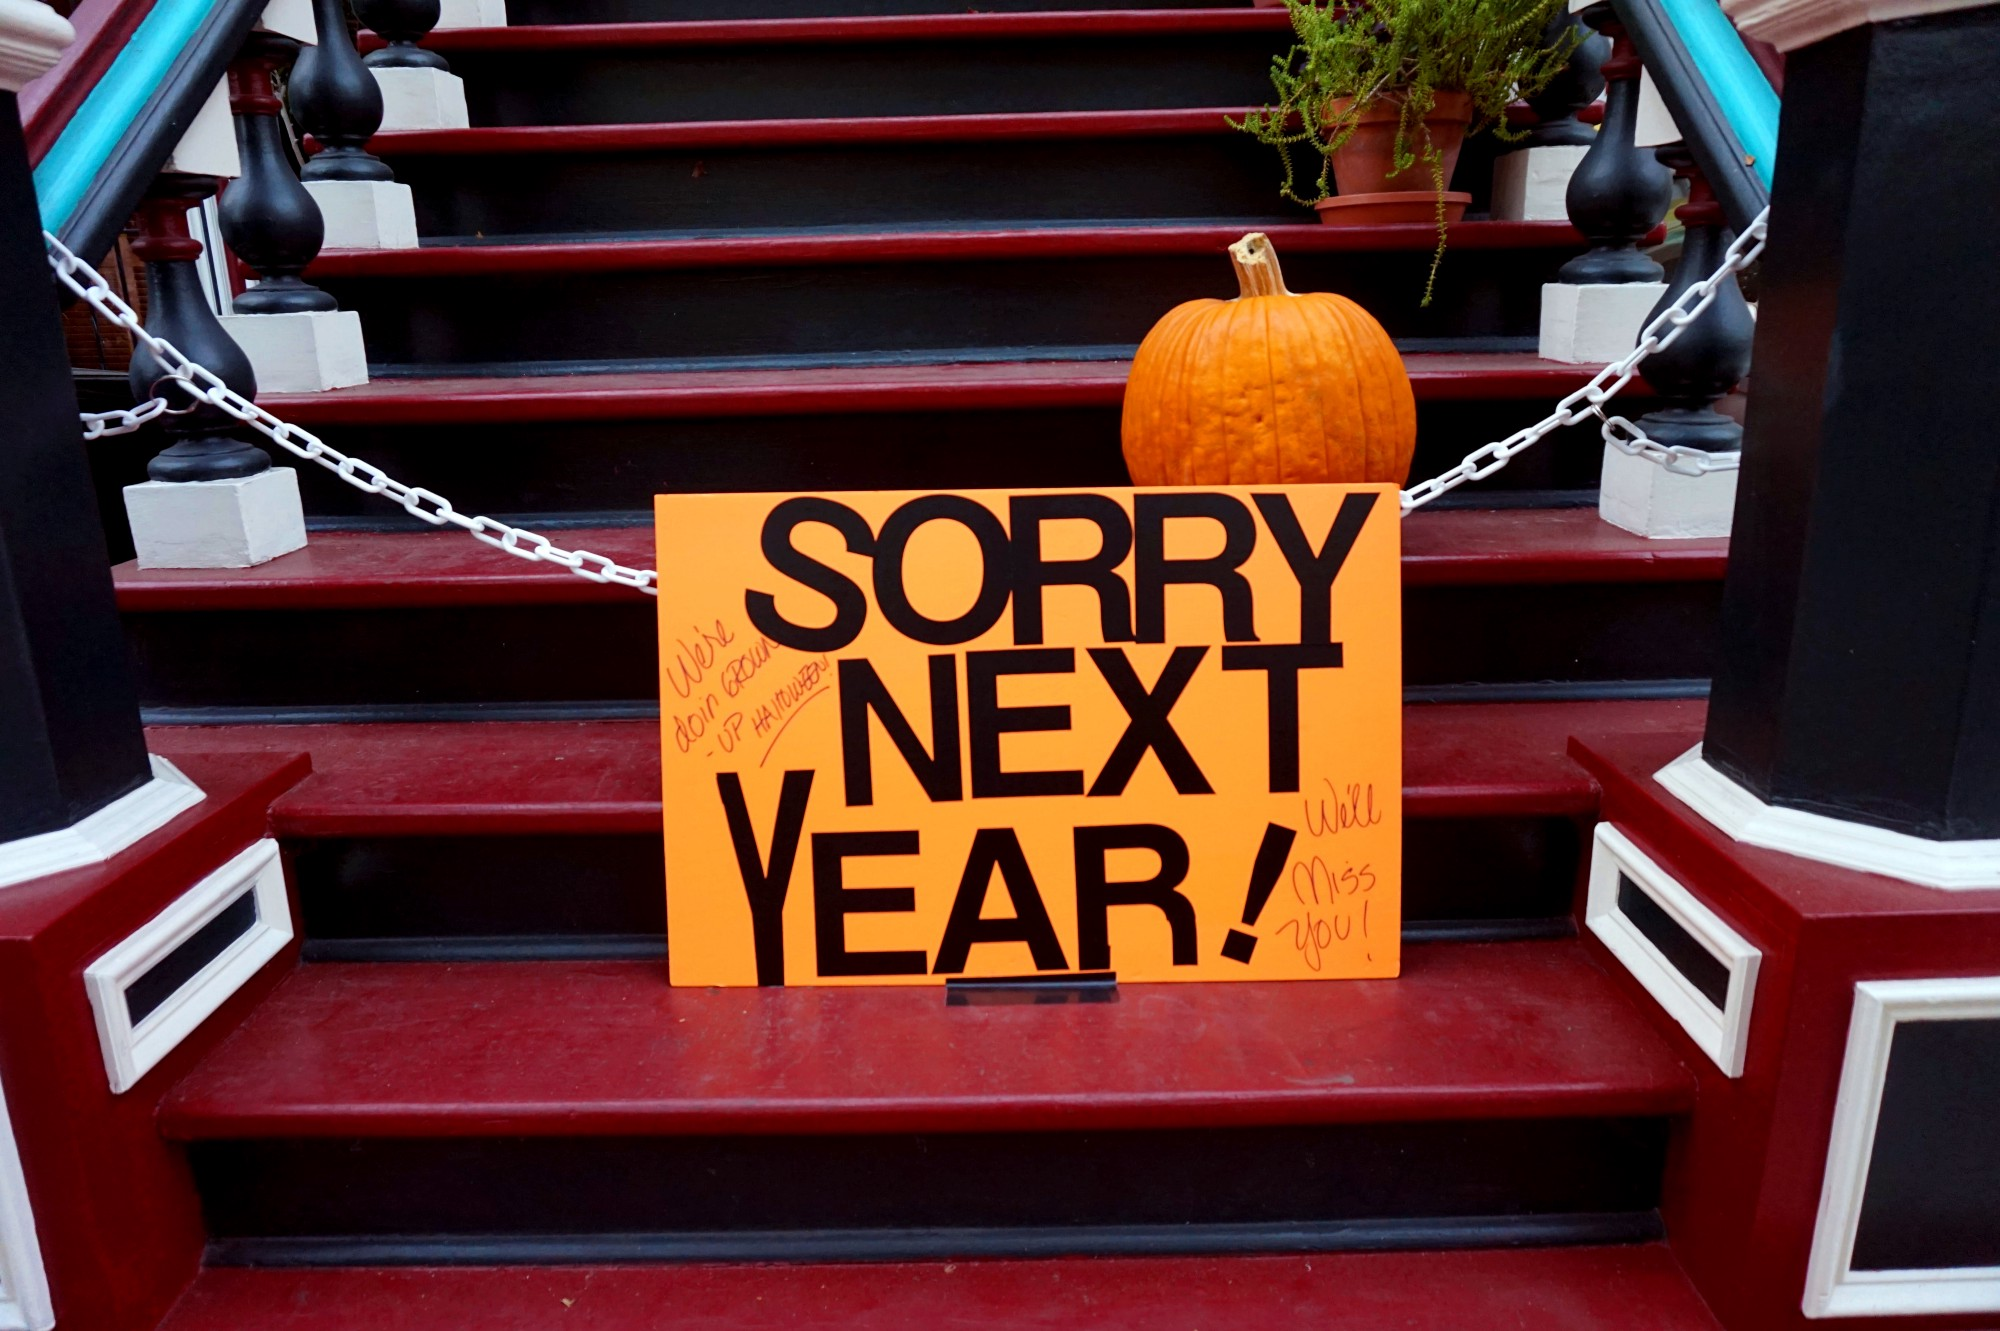 Is Halloween facing the prospect of cancellation in 2020 due to Covid-19?